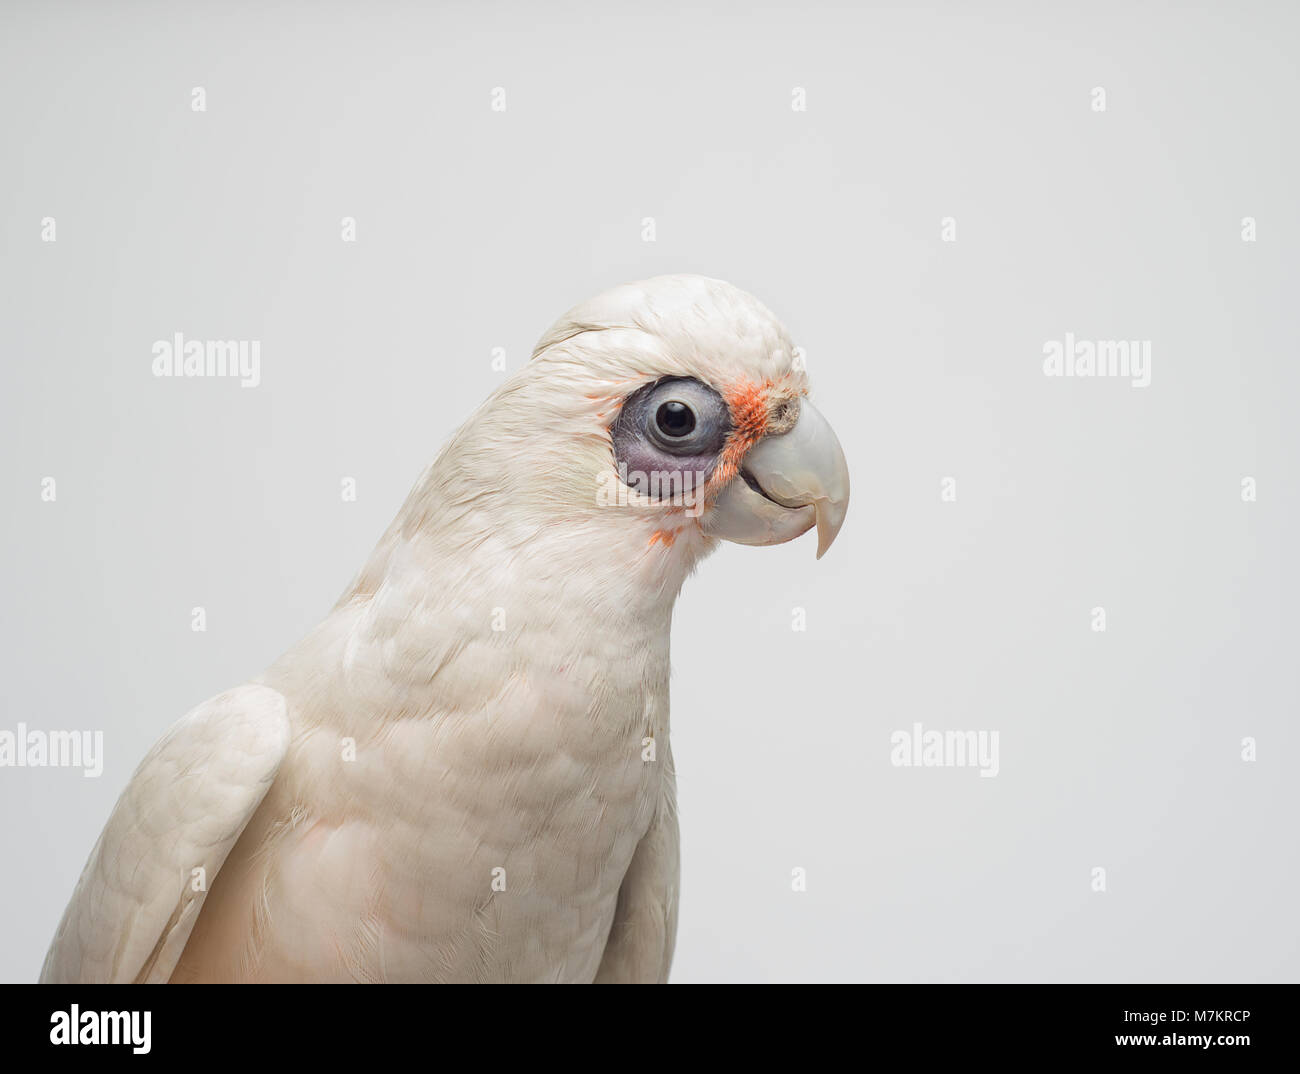 A studio shot of a Bare Eyed Cockatoo otherwise known as a Little Corella. Stock Photo